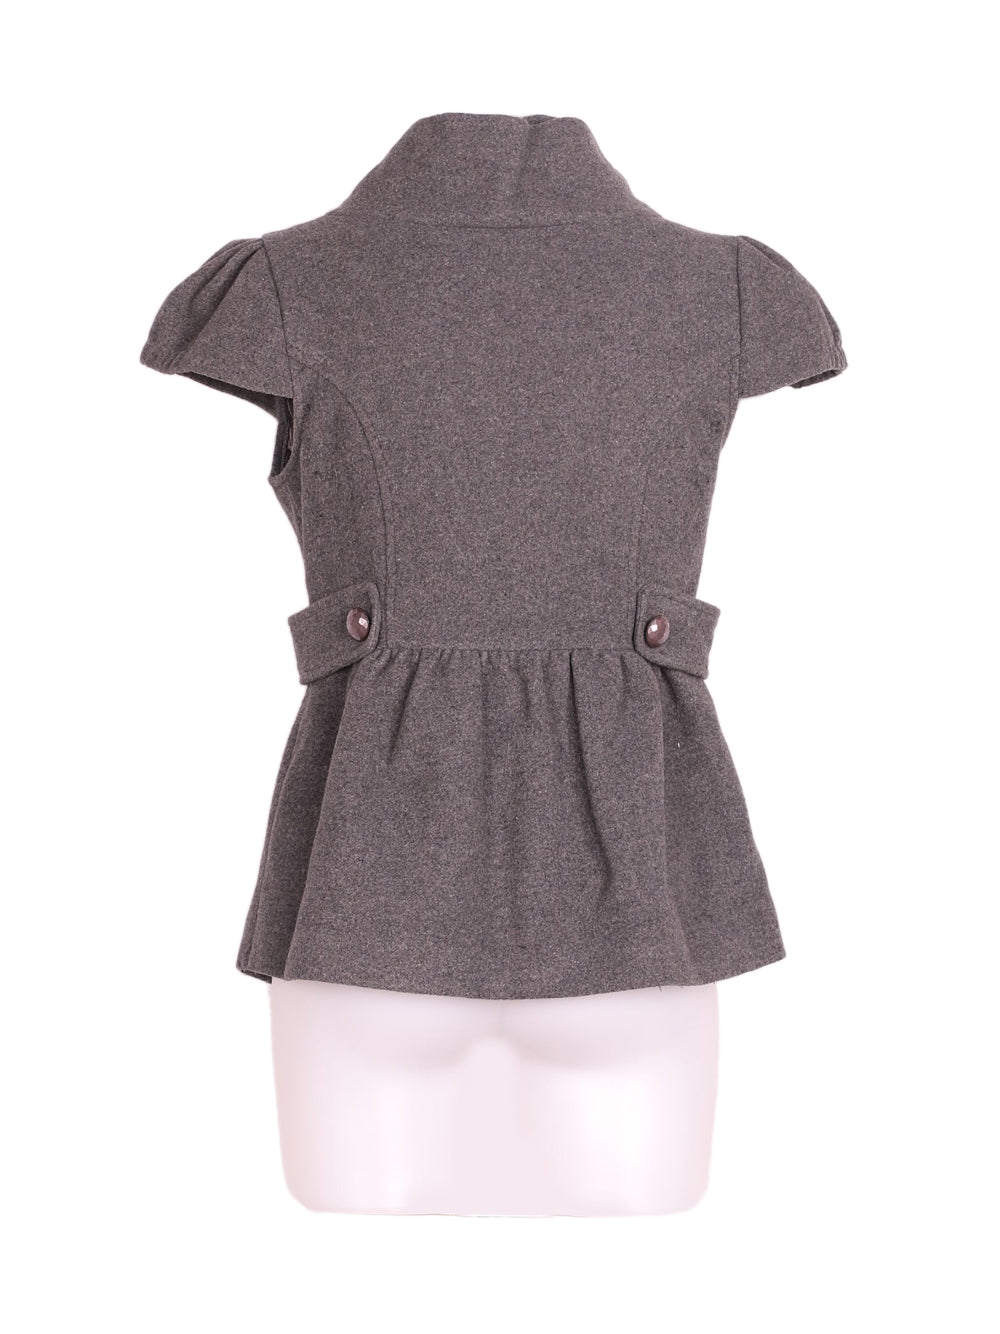 Back photo of Preloved TSega Grey Woman's sleeveless jacket - size 10/M